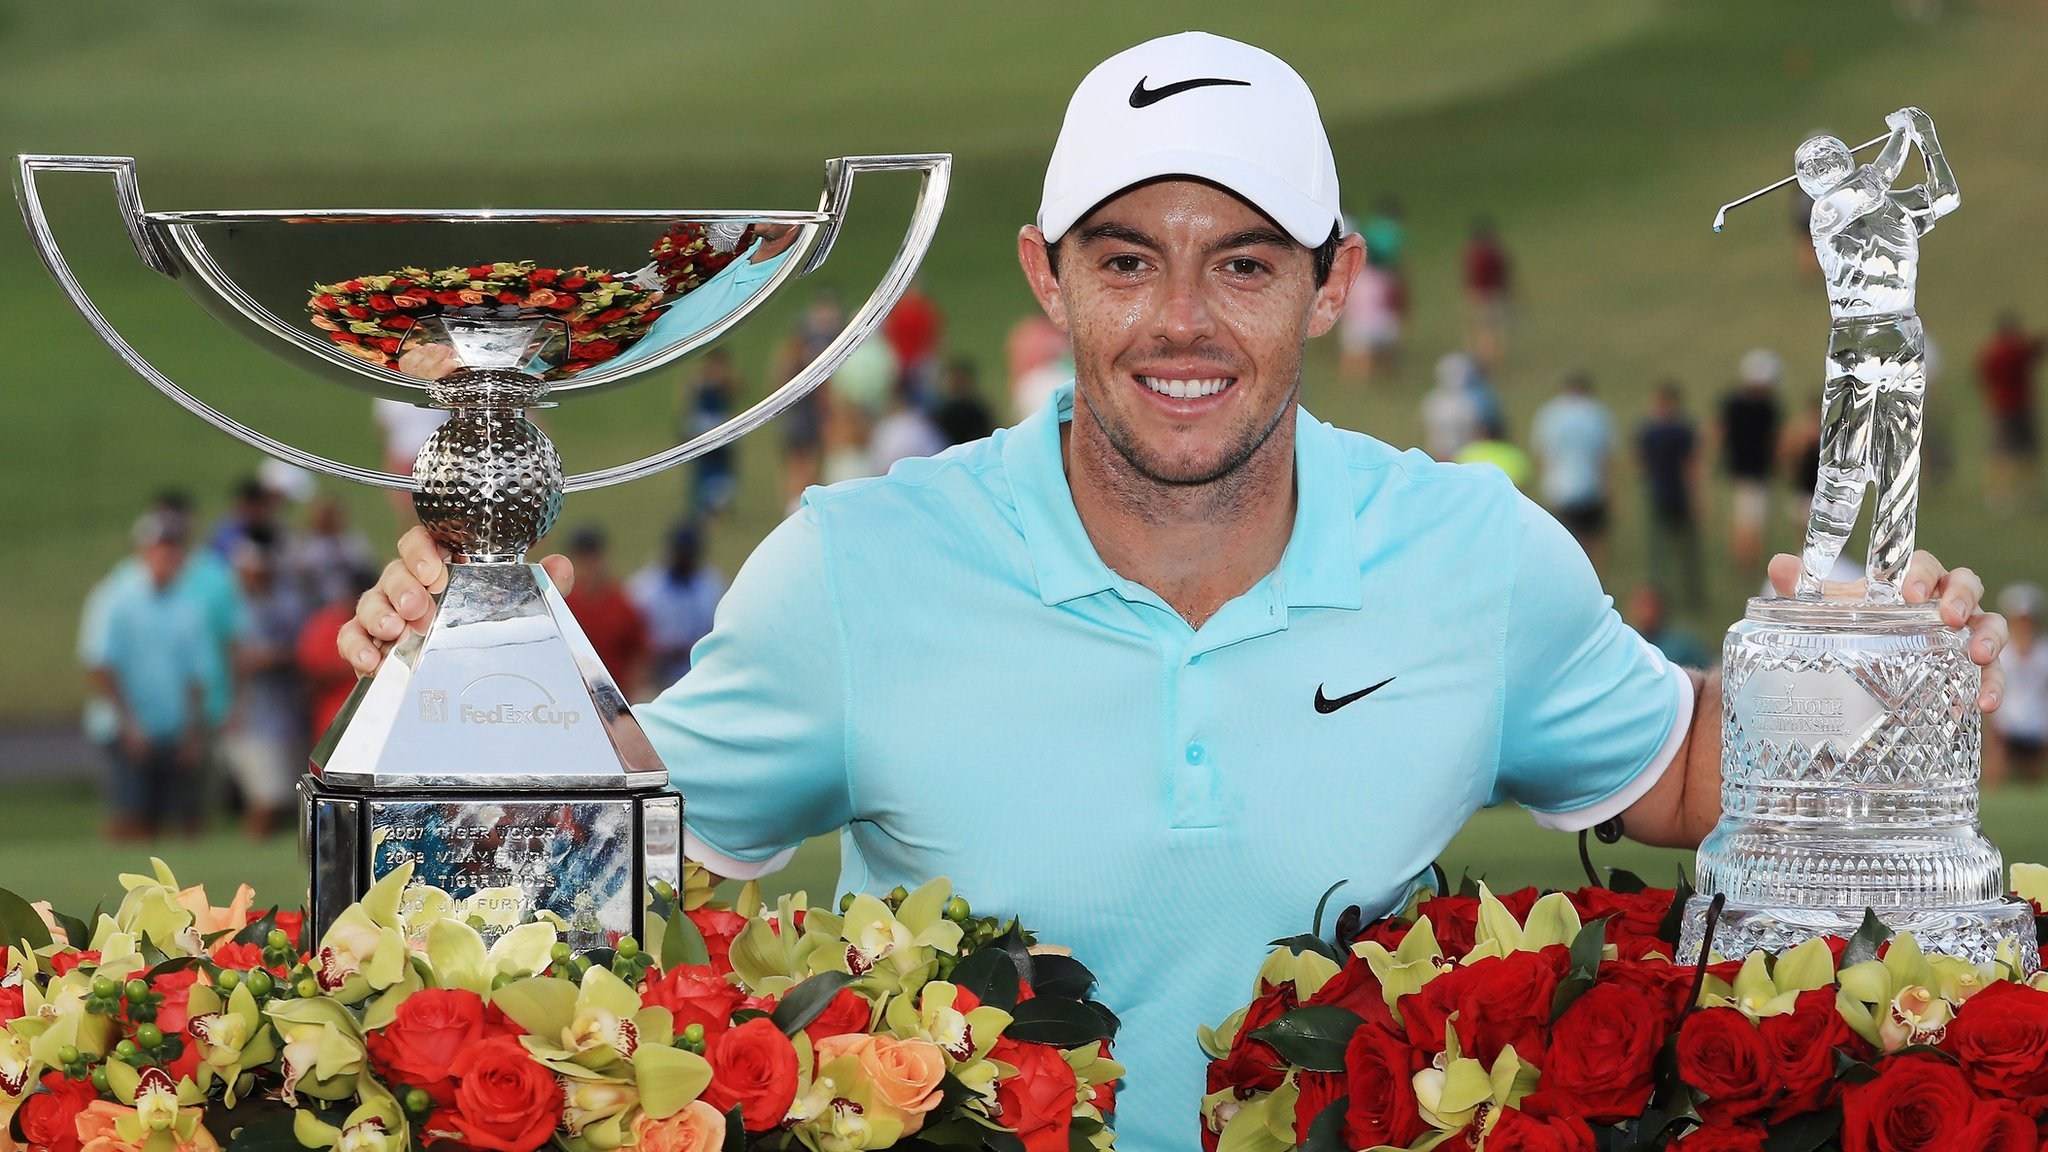 McIlroy wins $10m FedEx Cup with Tour victory